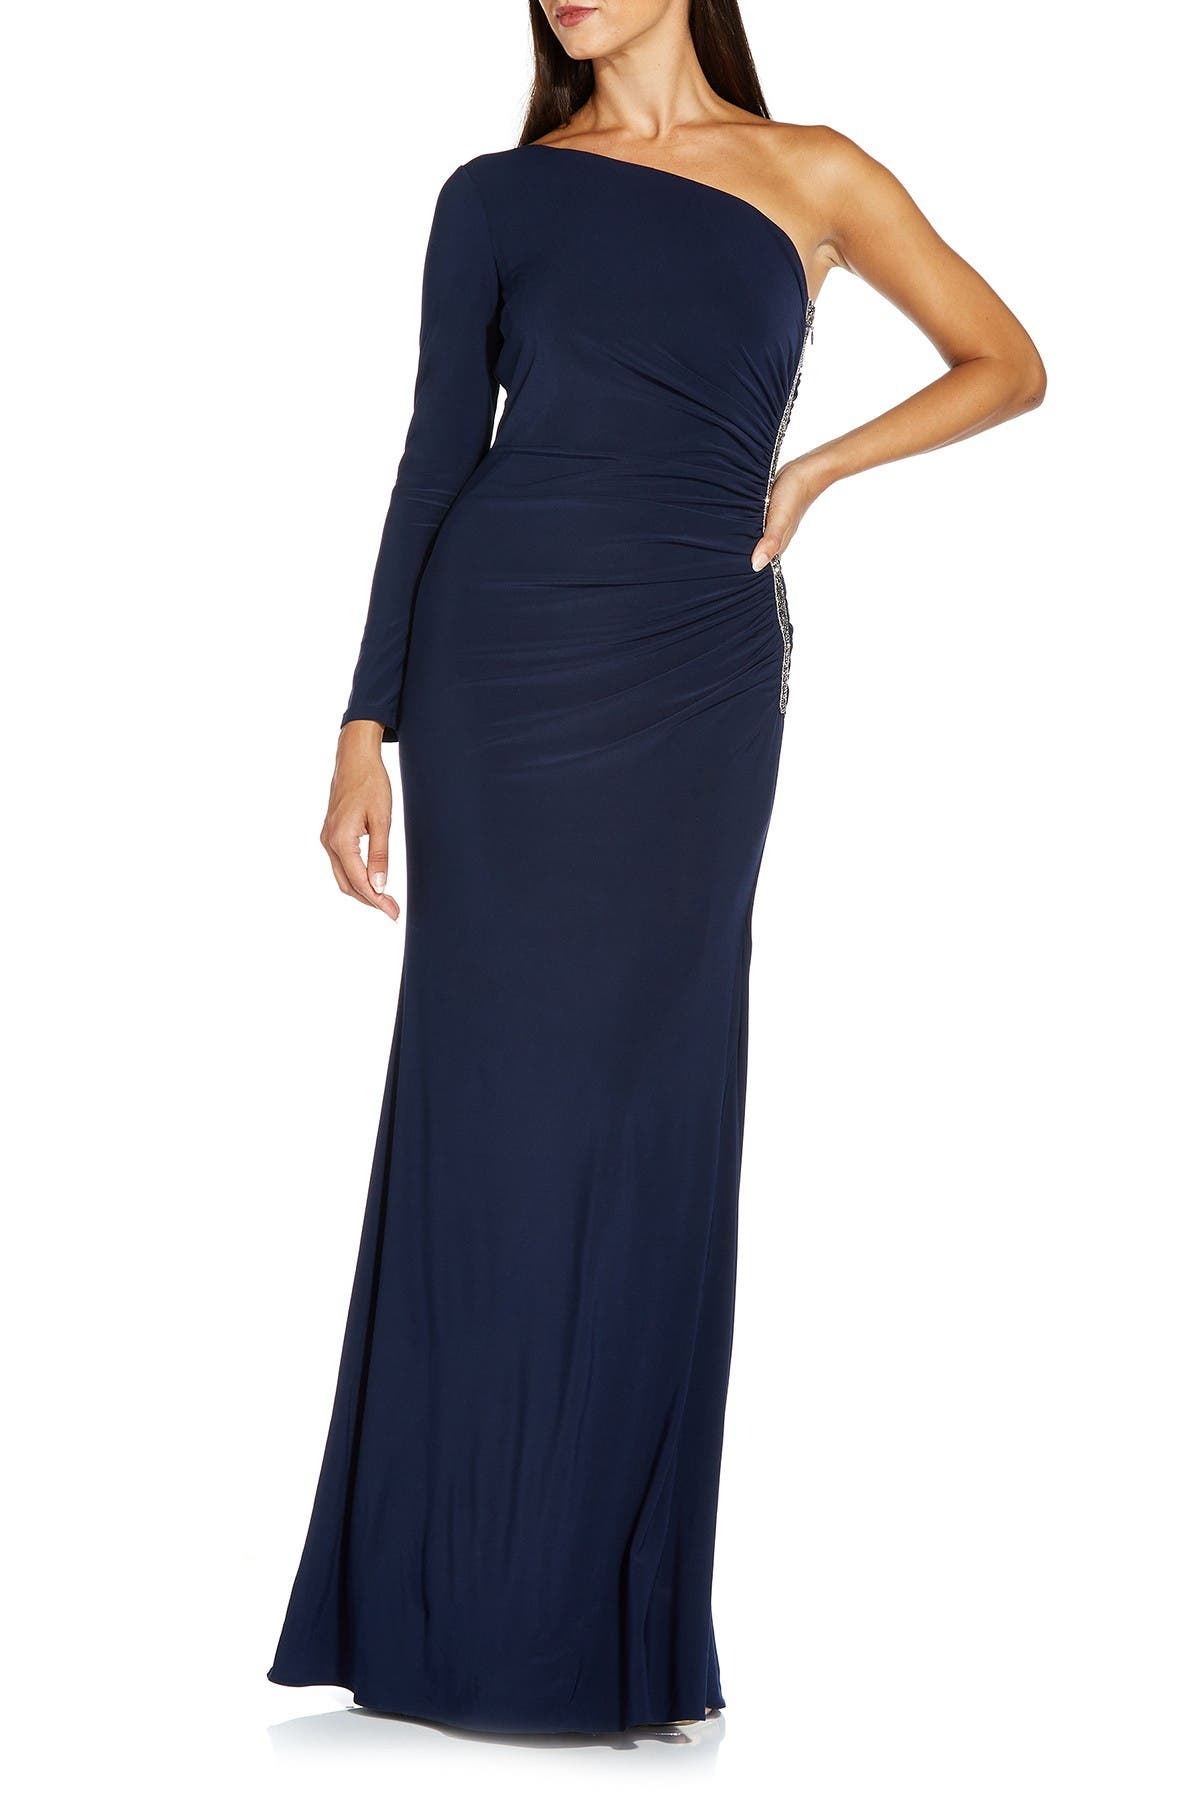 Image of Adrianna Papell One-Shoulder Embellished Gown